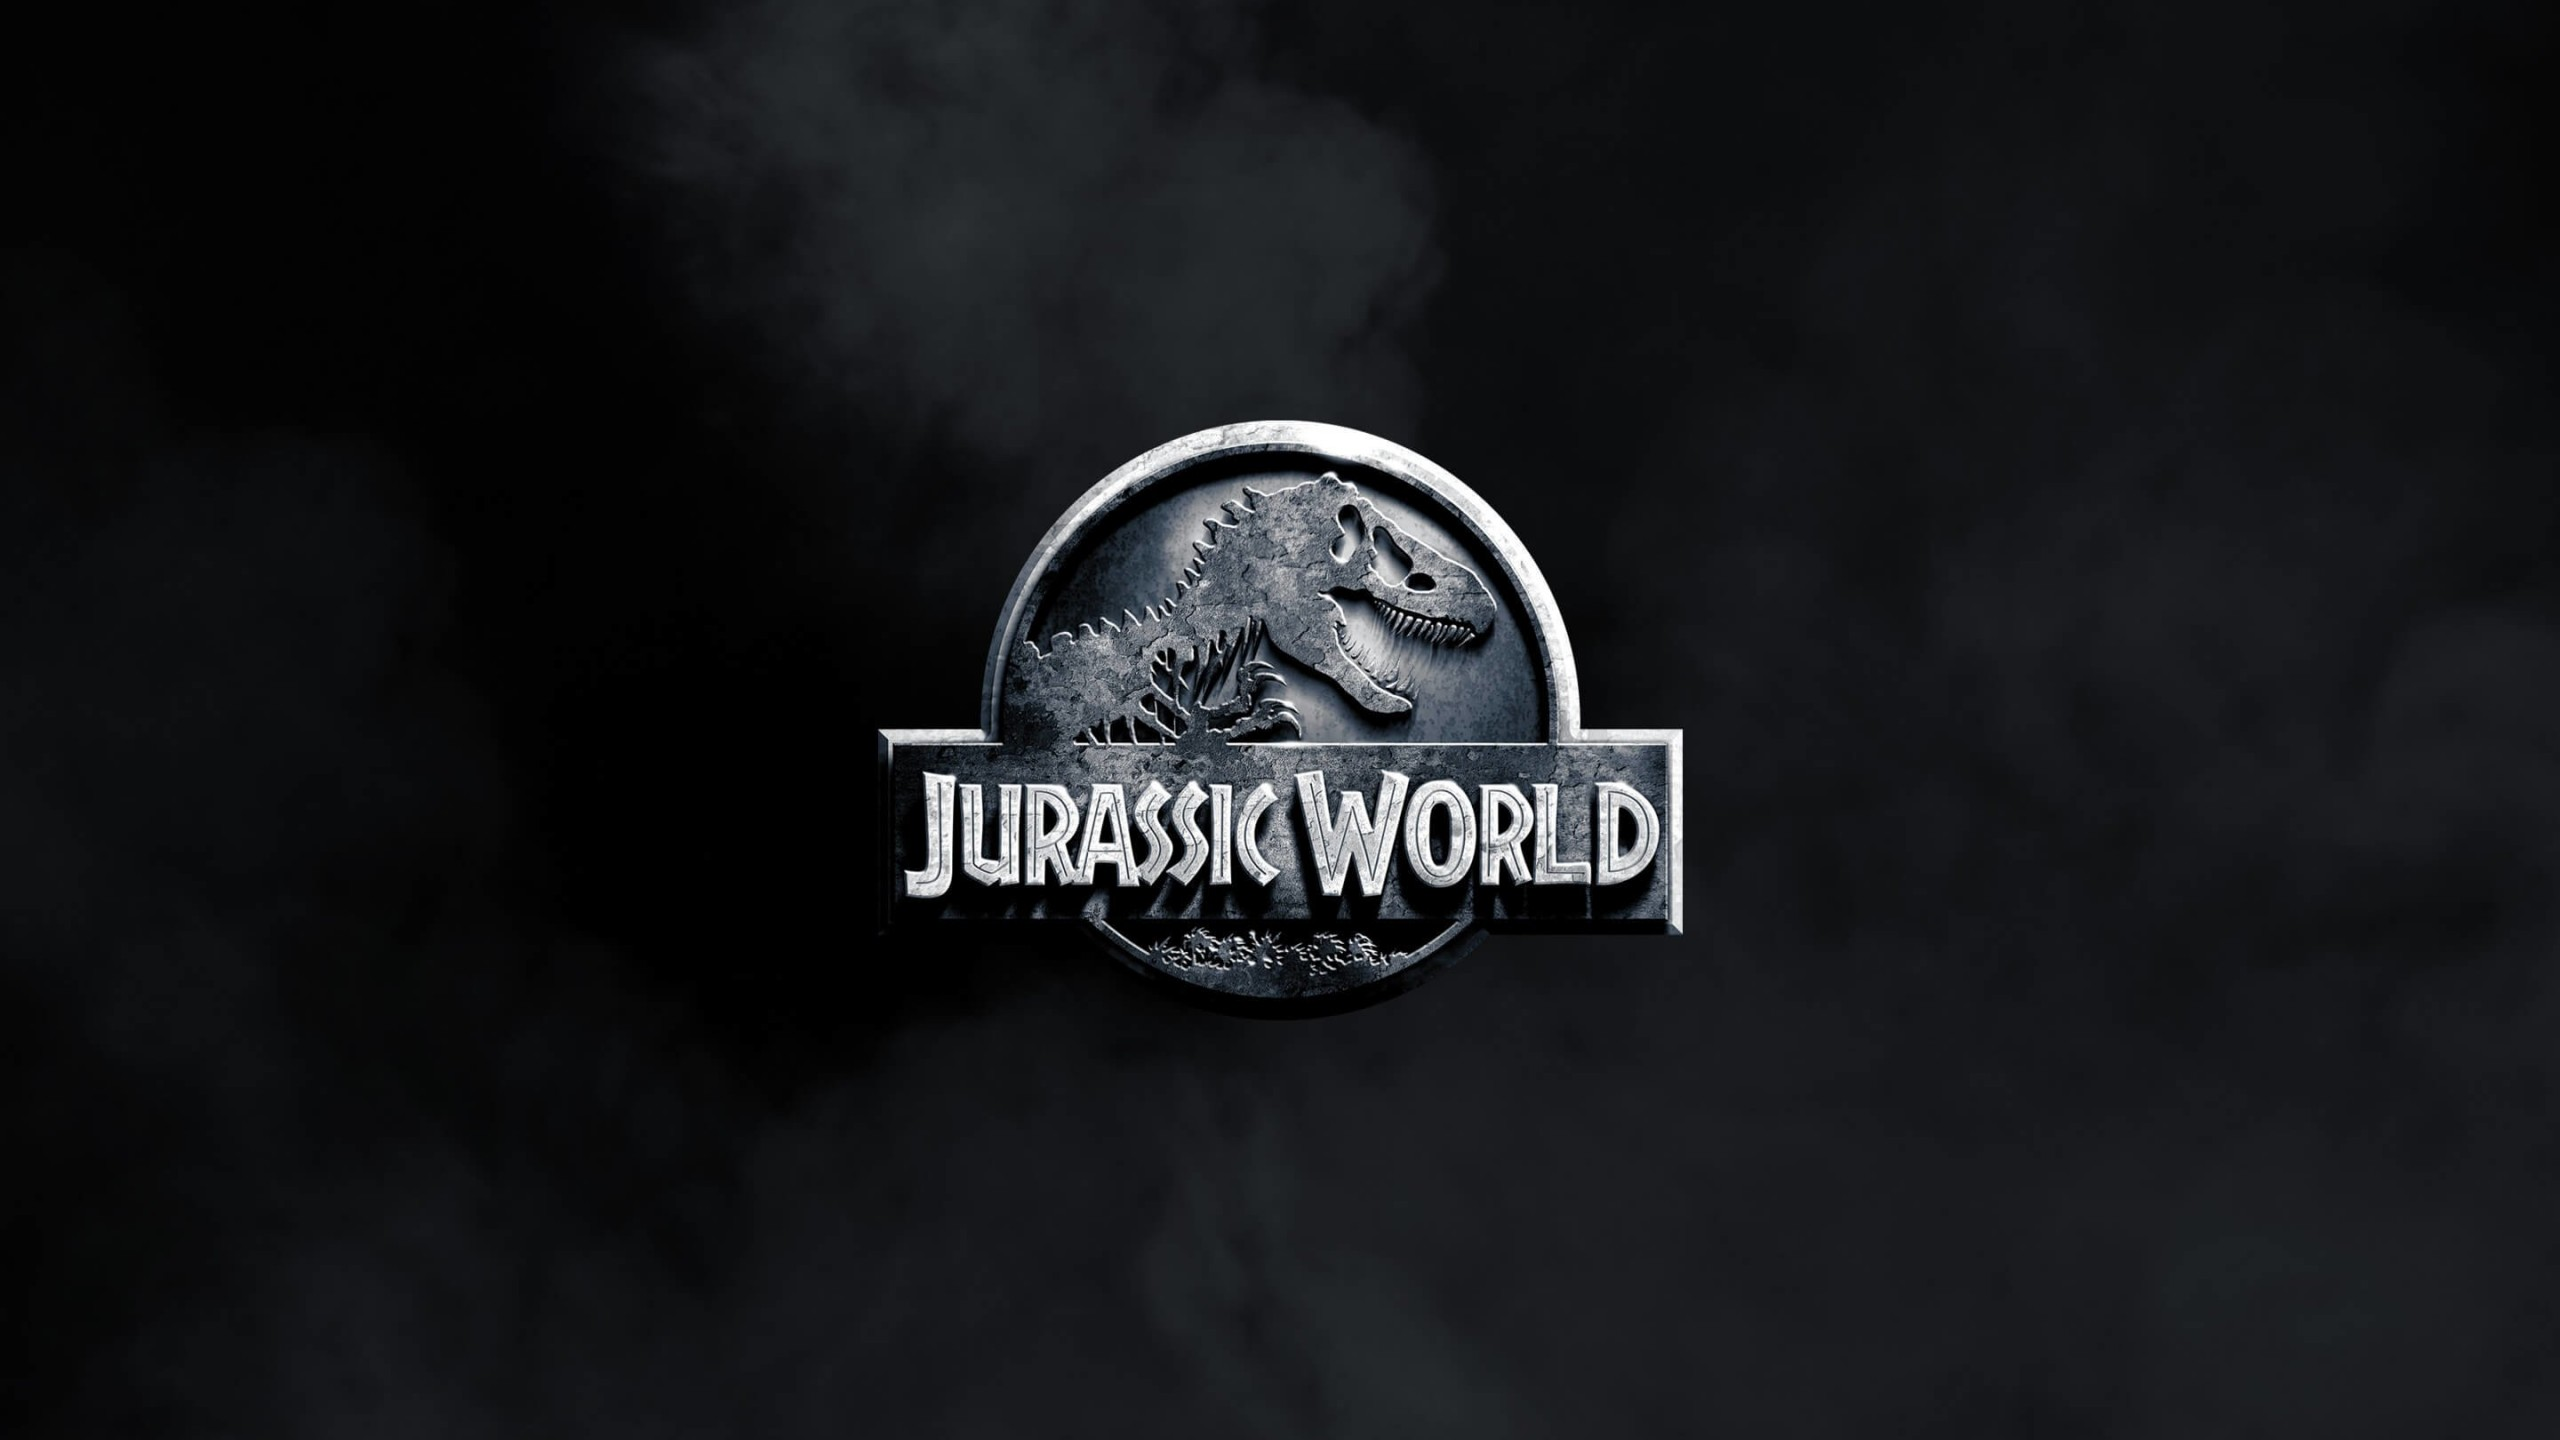 Jurassic World Wallpaper for Desktop 2560x1440